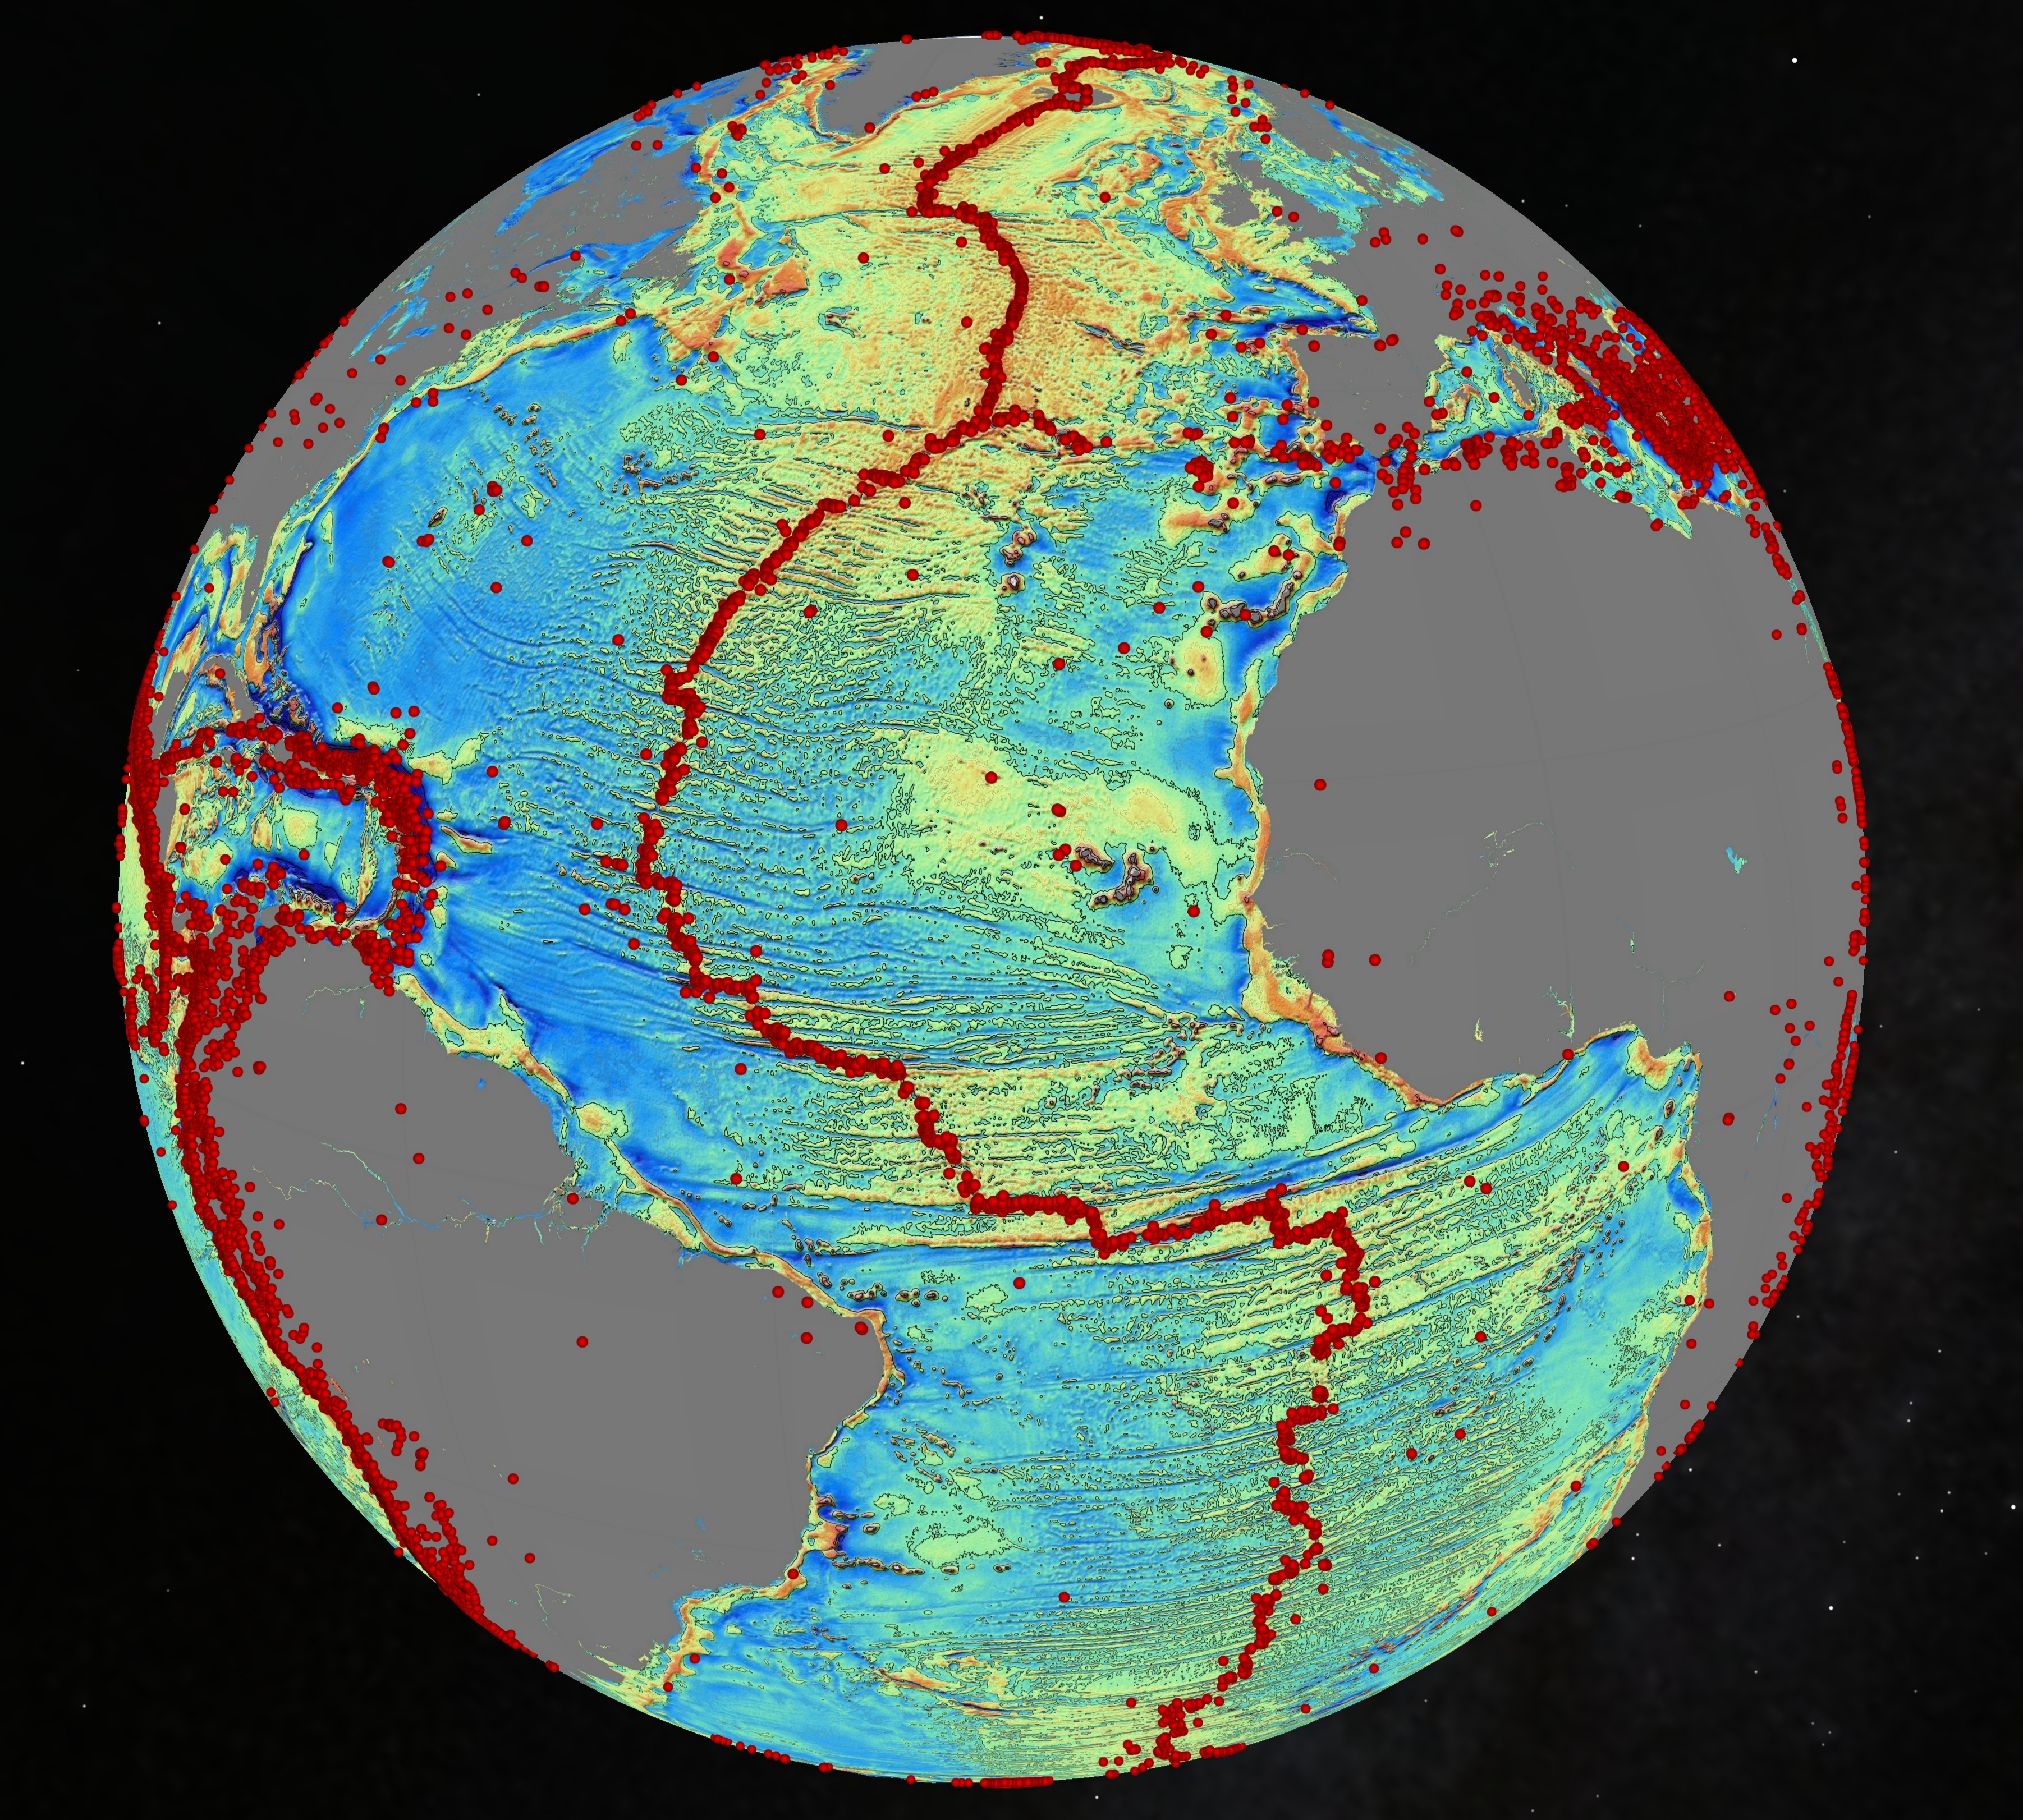 Gravity's Magic: New Seafloor Map Shows Earth's Uncharted